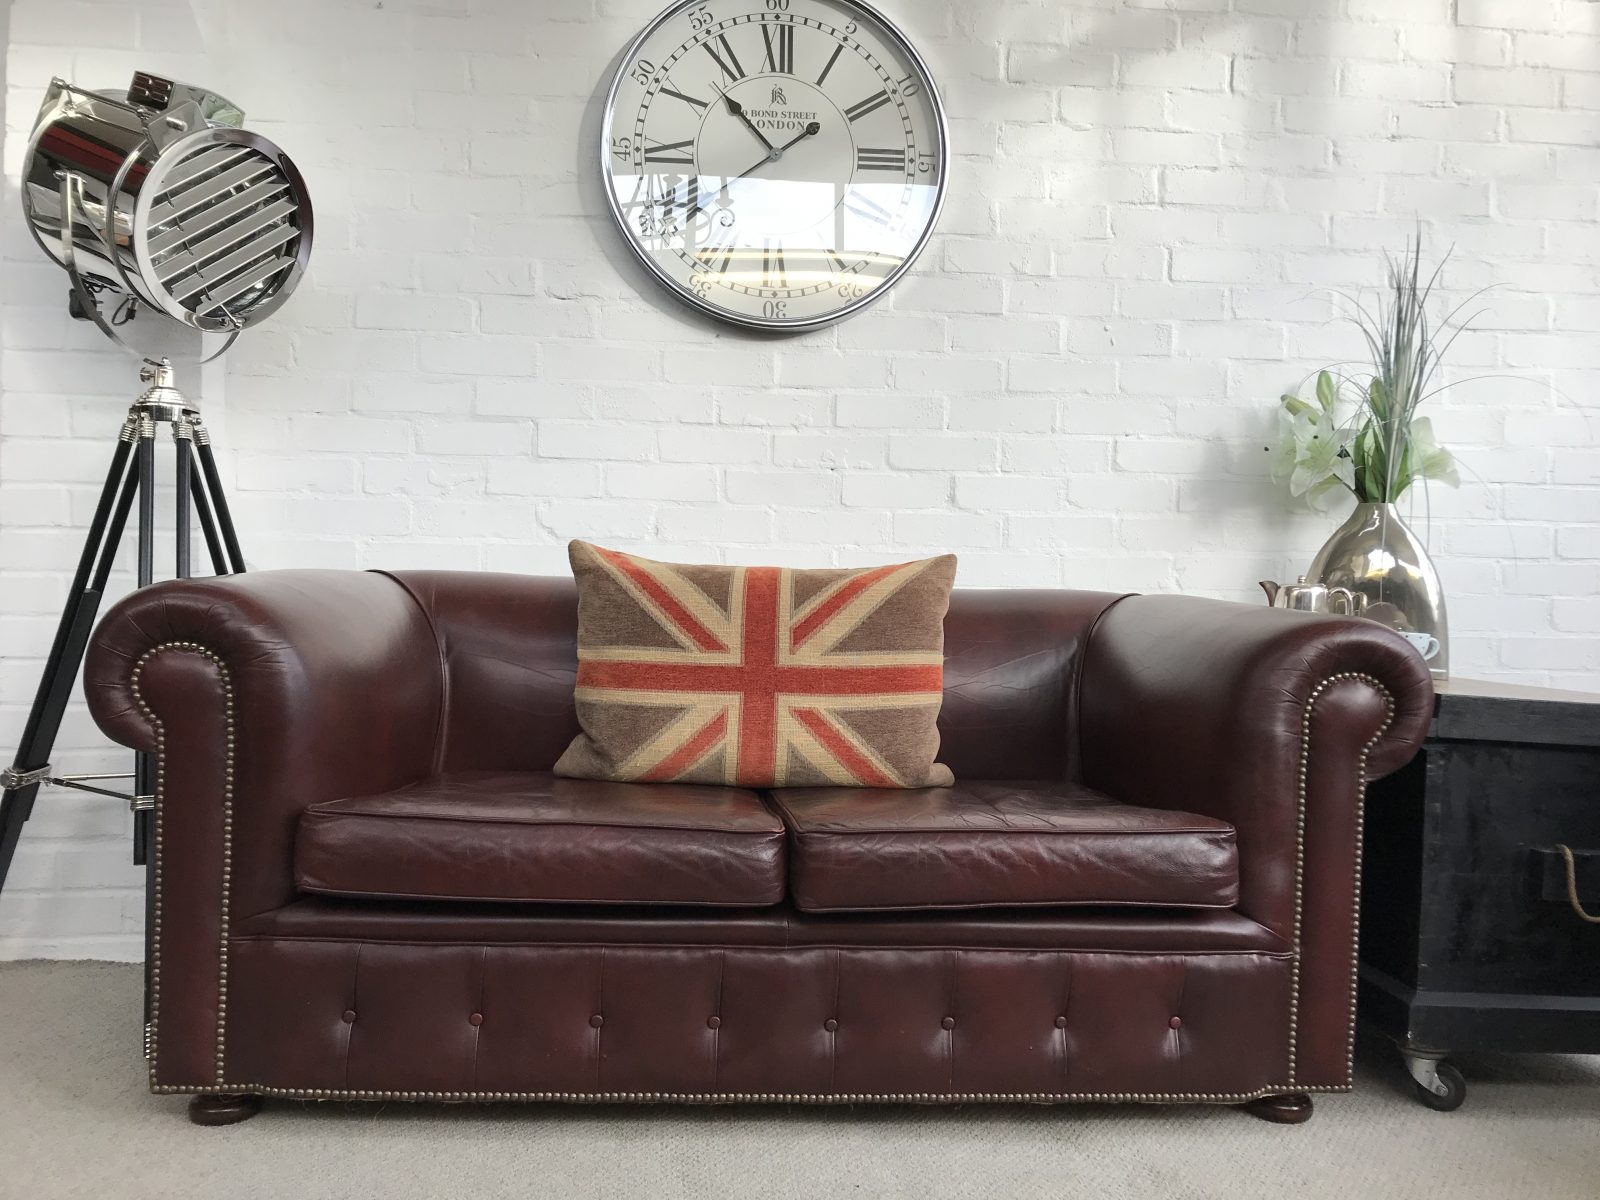 Vintage 1980's Chesterfield Sofa…..SOLD.